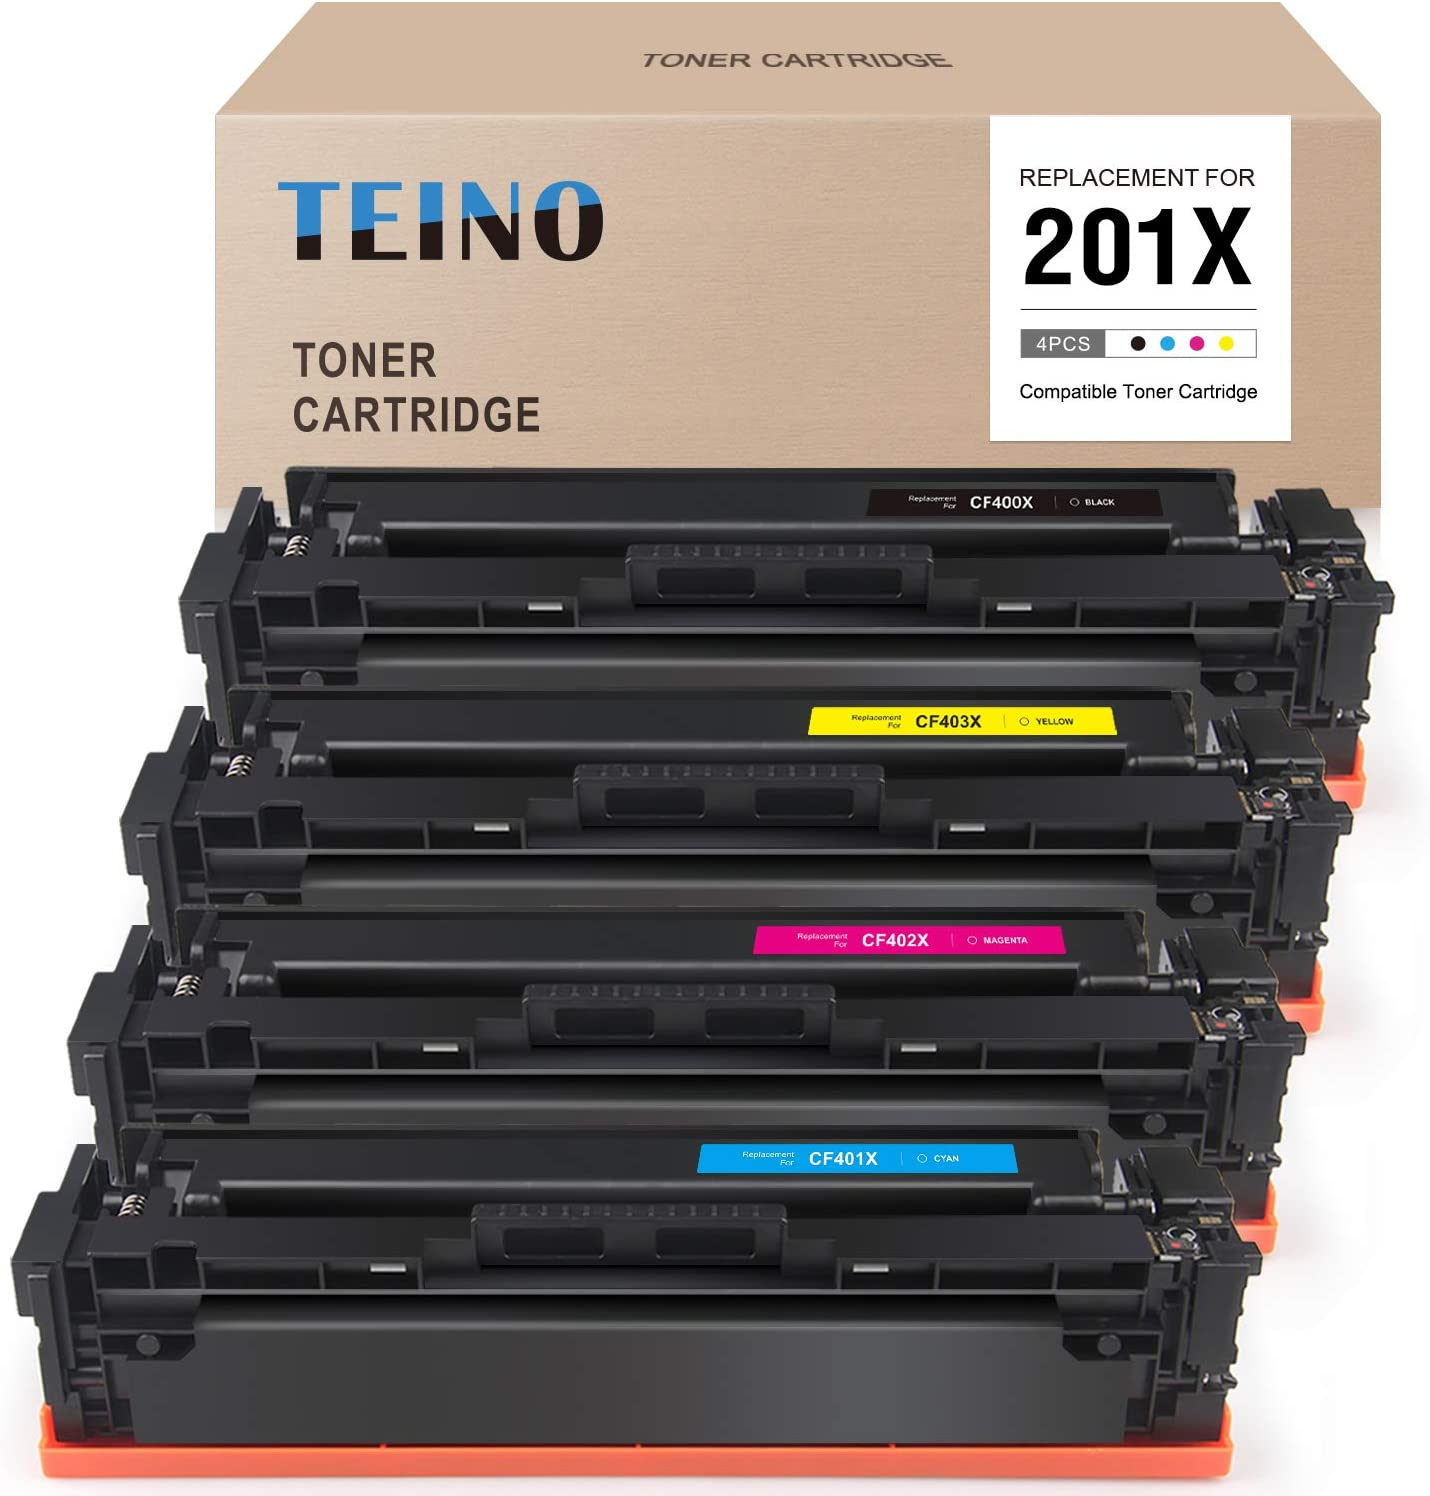 TEINO Compatible Toner Cartridge Replacement for HP 201X 201A CF400X CF401X CF402X CF403X CF400A for Color Laserjet Pro MFP M277dw M252dw M252 M277c6 M277n M252n (Black, Cyan, Magenta, Yellow)